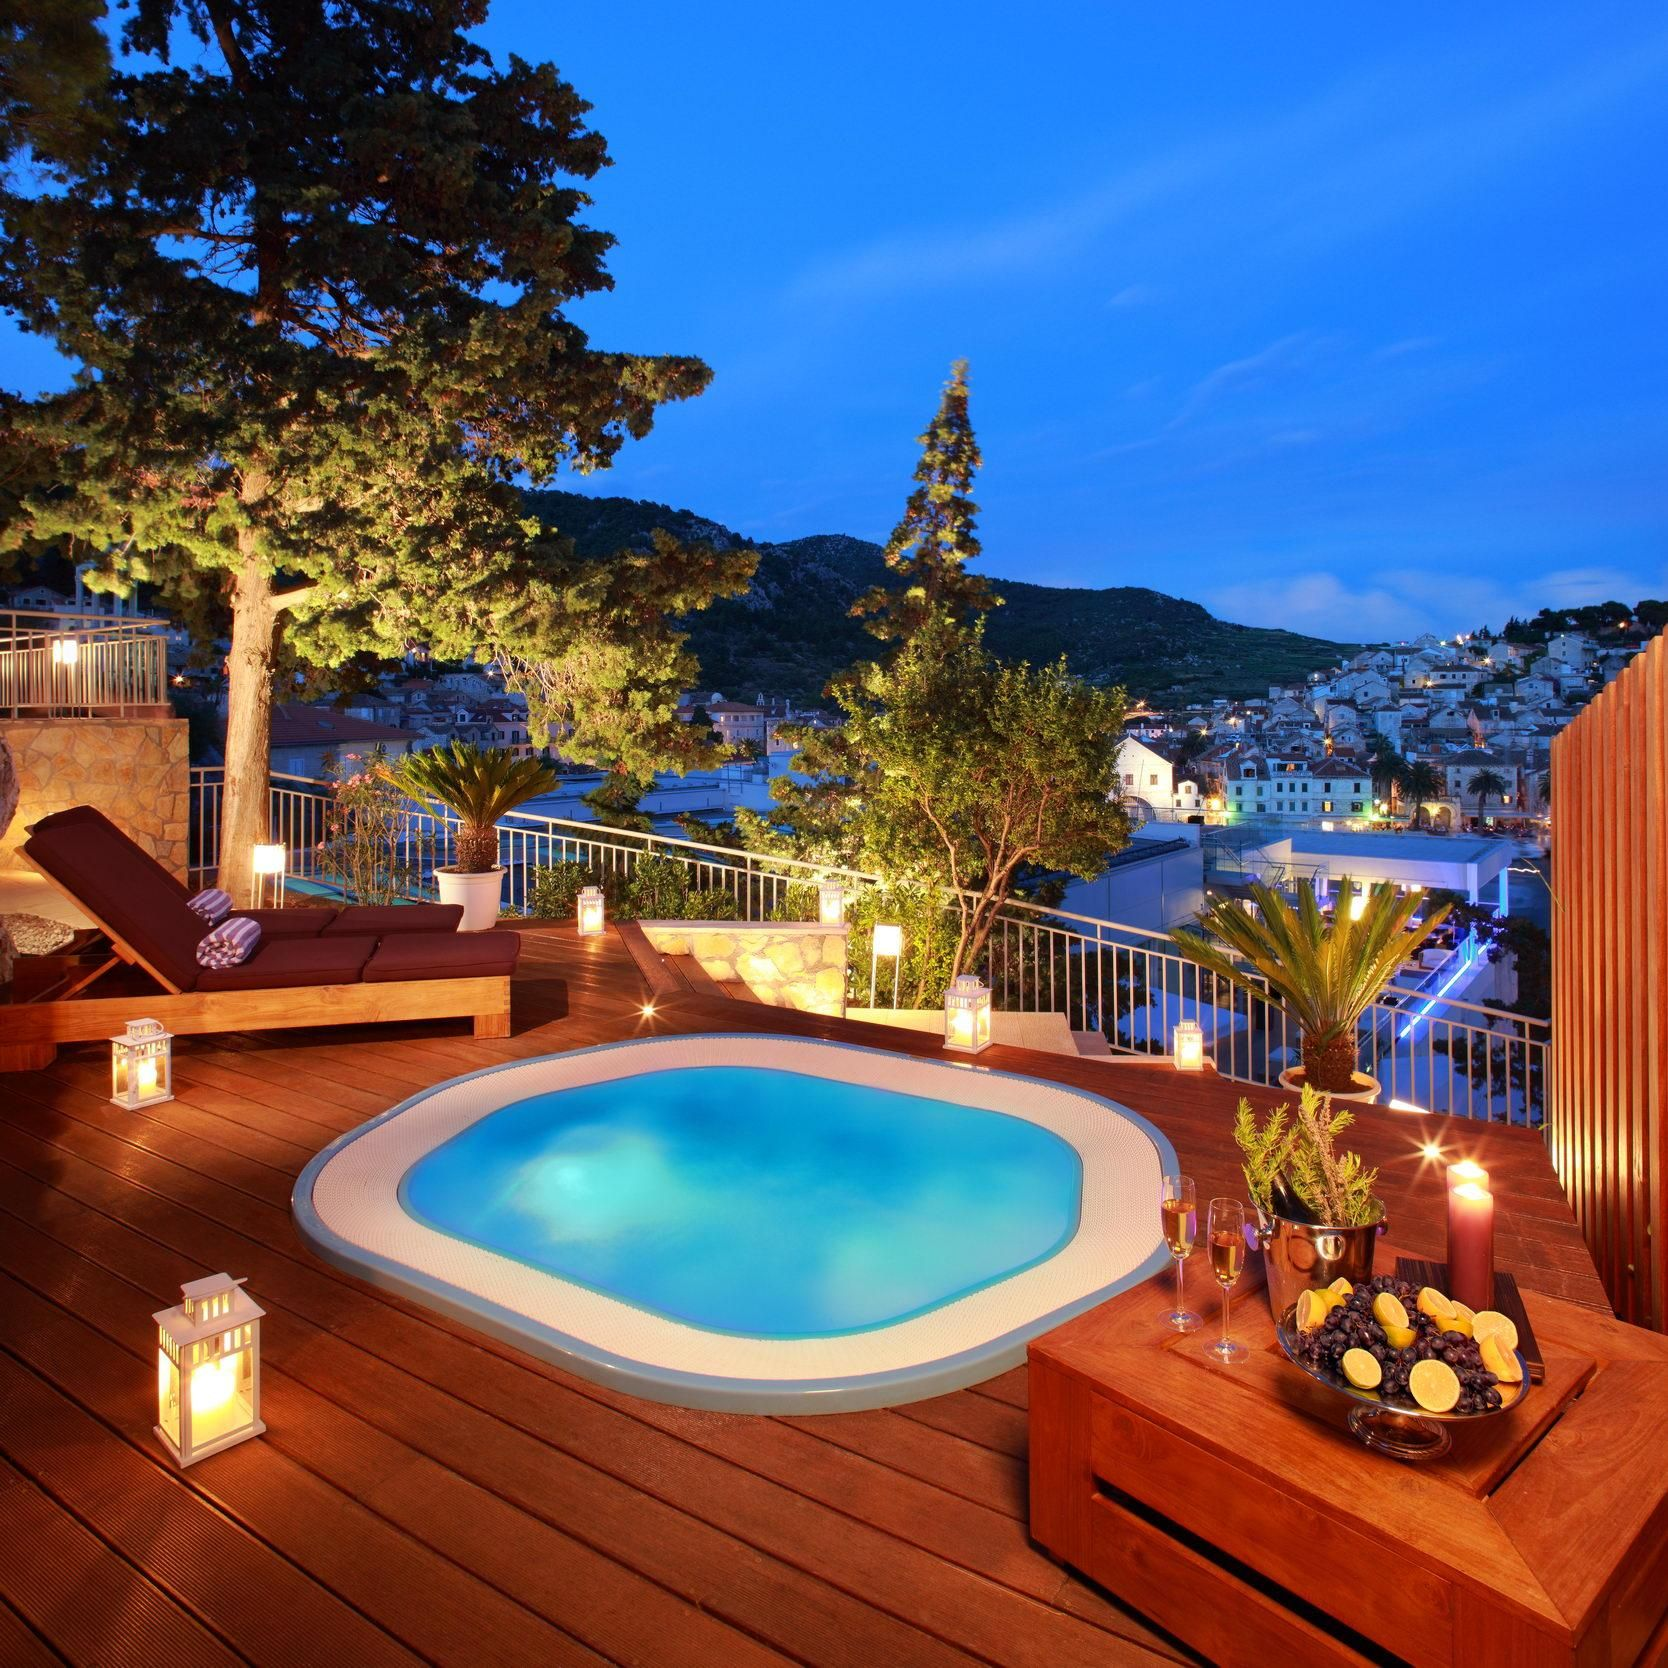 Adriana Hvar Spa Hotel S Leading Boutique Perfectly Located And Uniquely Designed For The Ultimate In Relaxation Experience